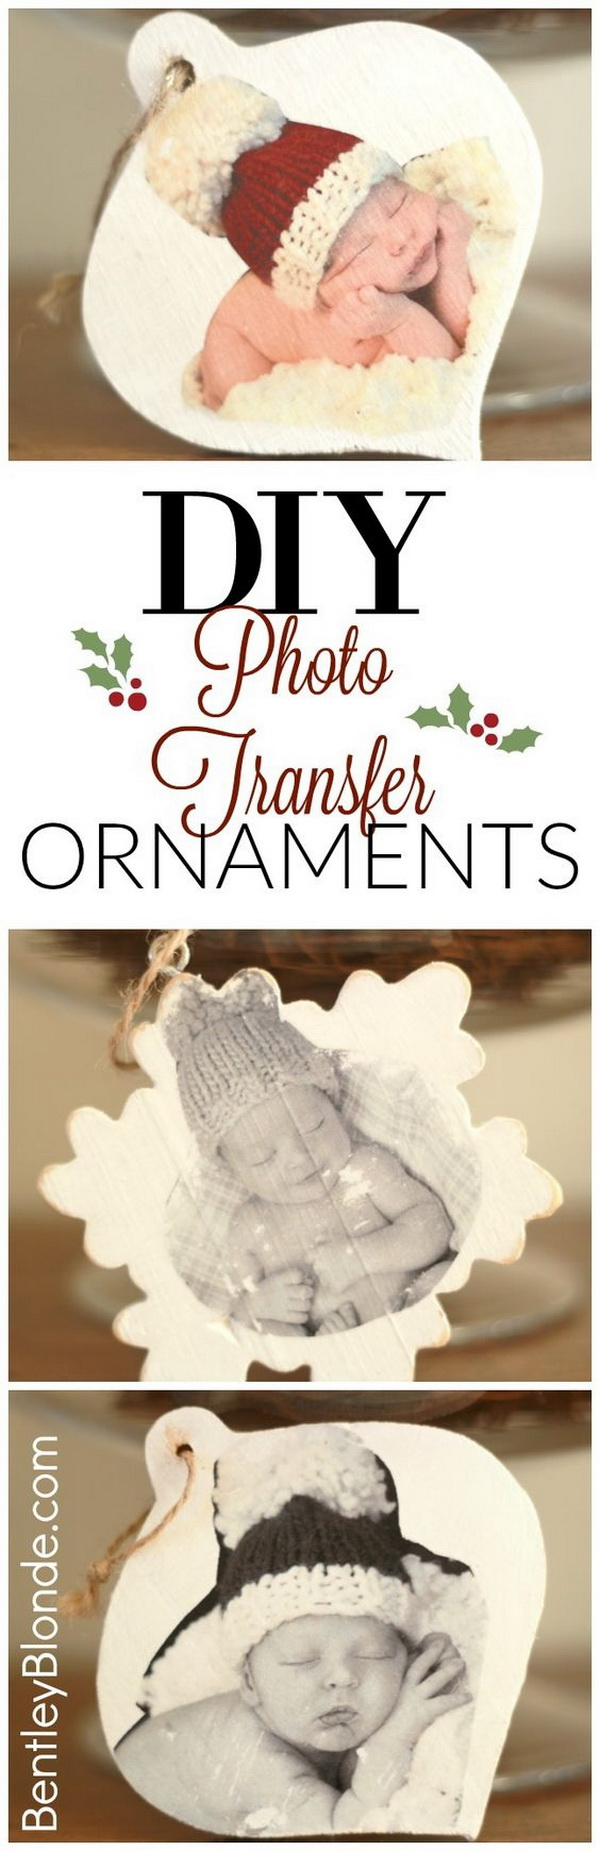 DIY Wood Christmas Ornaments with Photo Transfer.